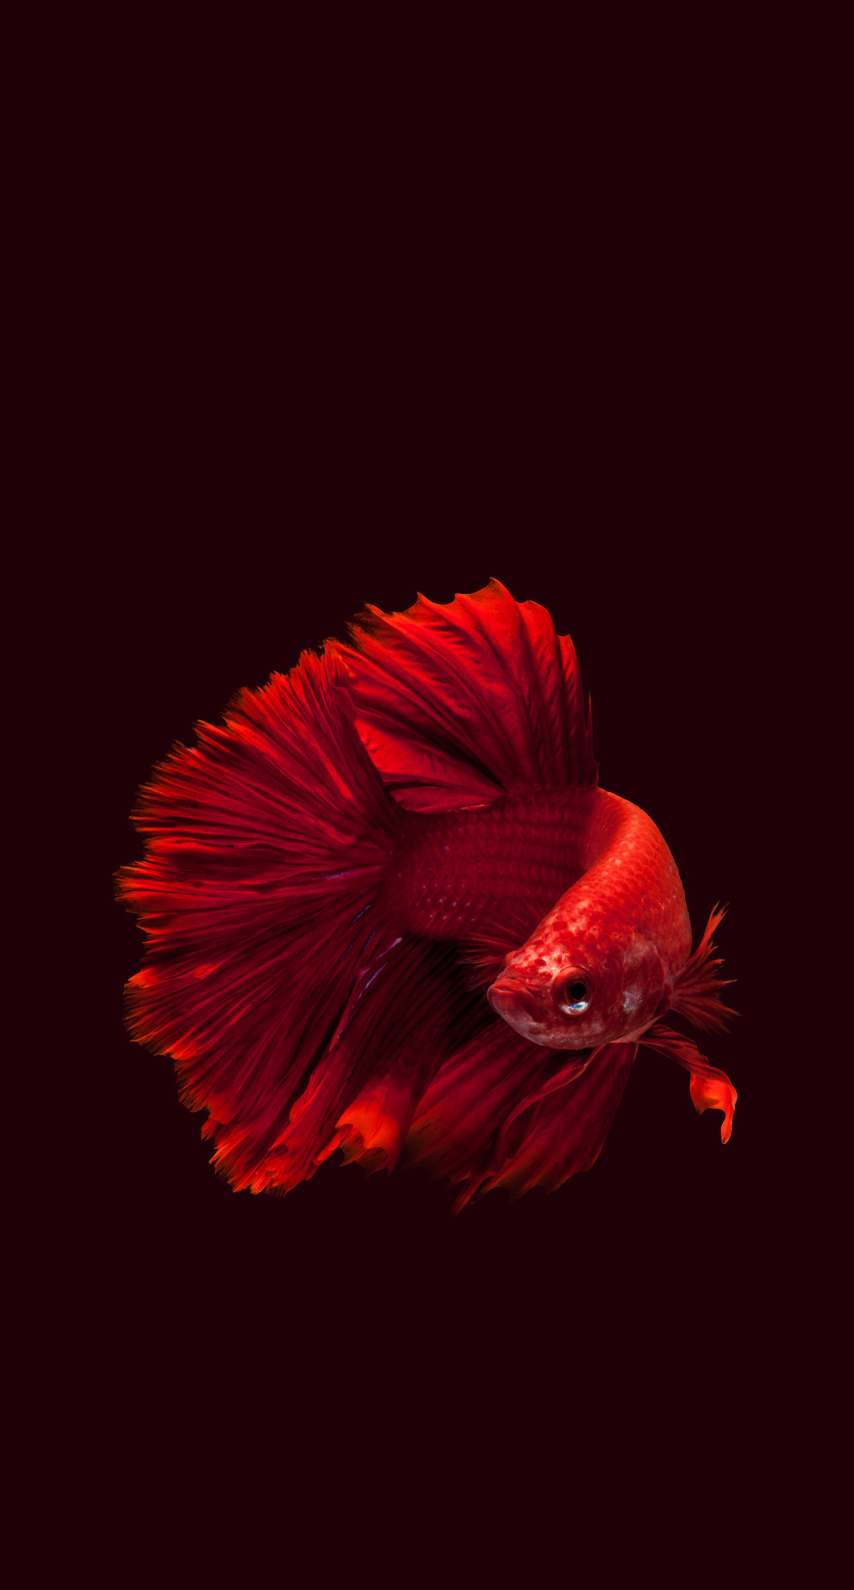 no person, one, color, coloring, portrait, wildlife, underwater, aquarium, parrot, siamese, pigeon